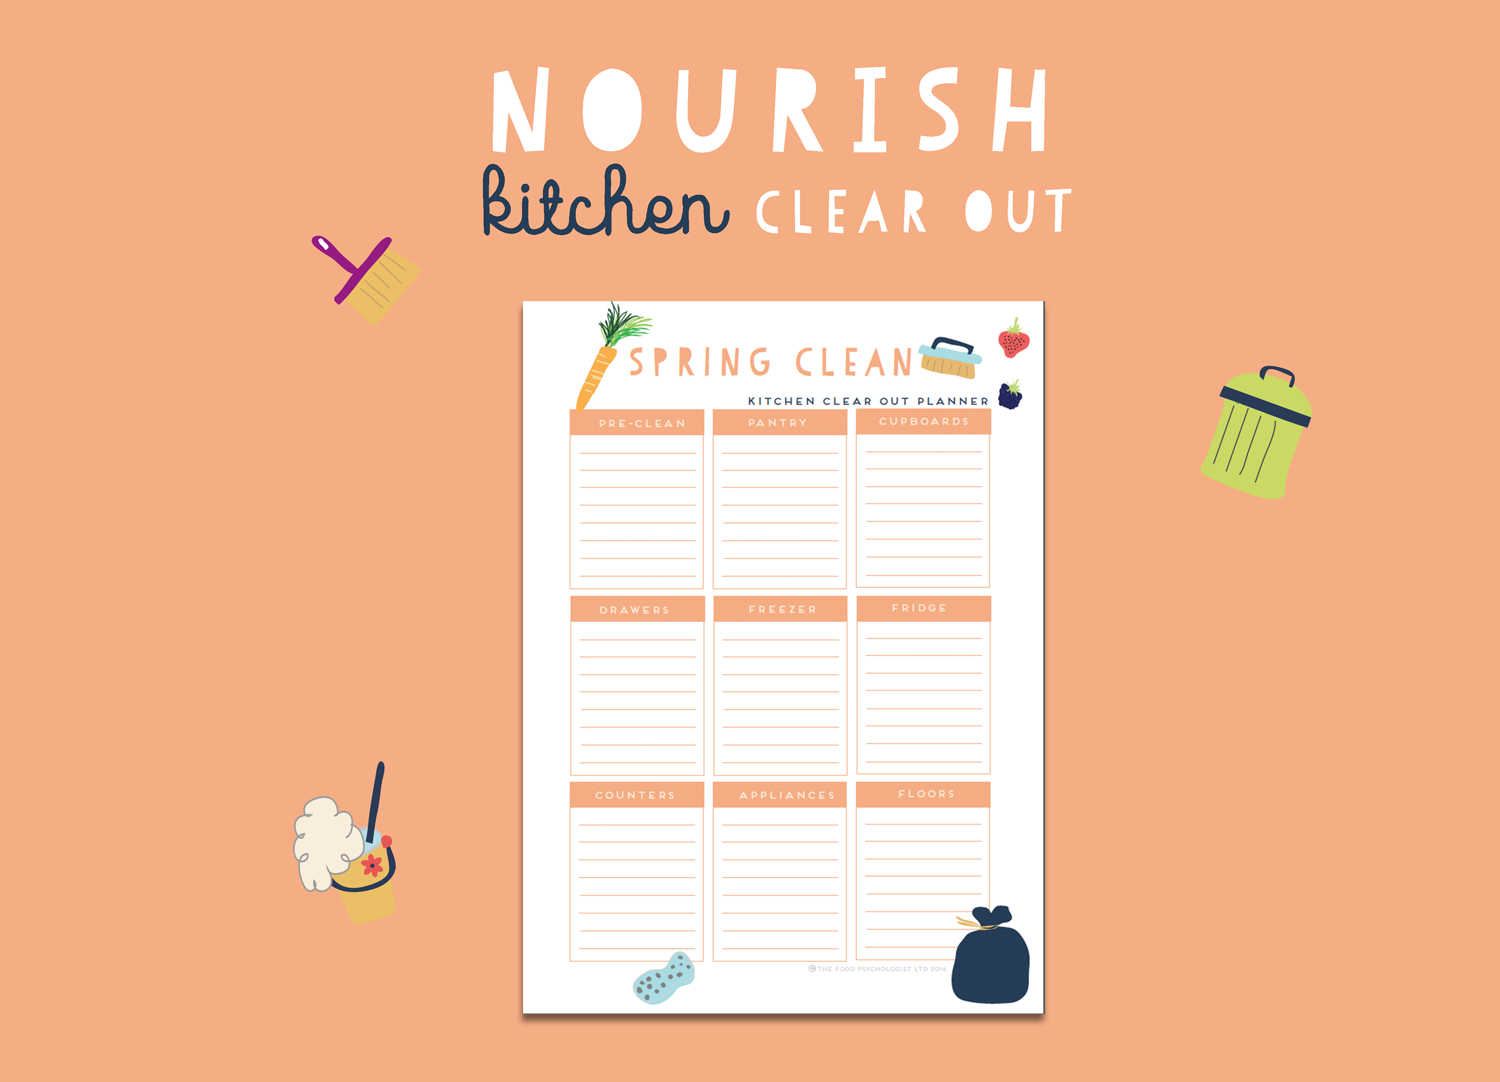 Nourish Kitchen Clear Out